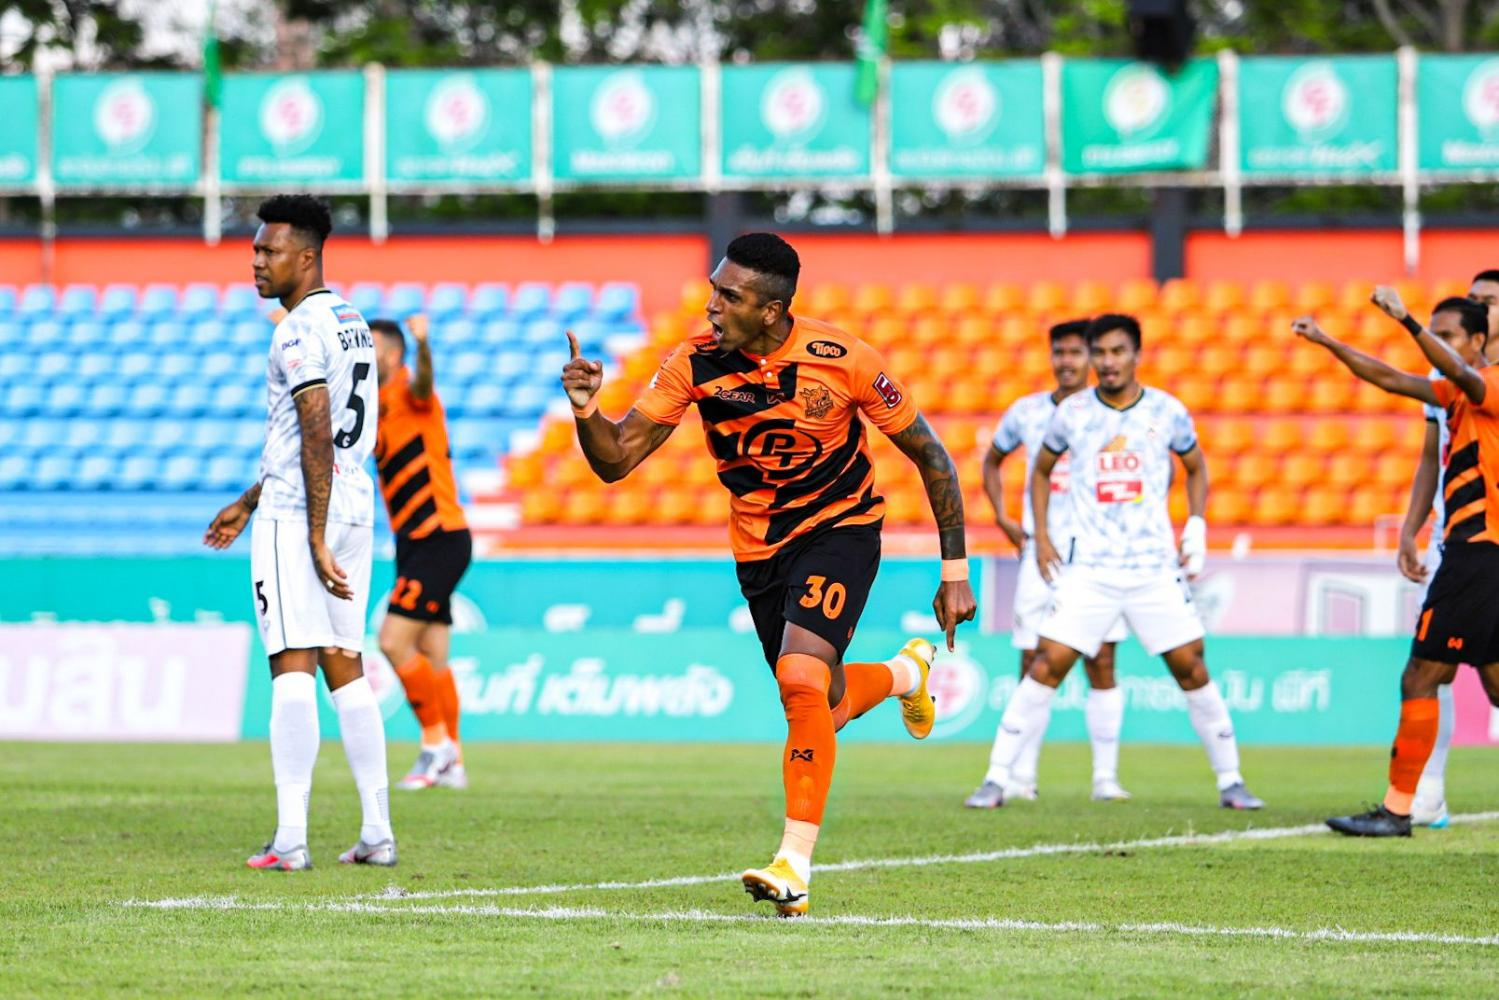 Prachuap's Willen Mota celebrates after scoring against Chiang Rai United.